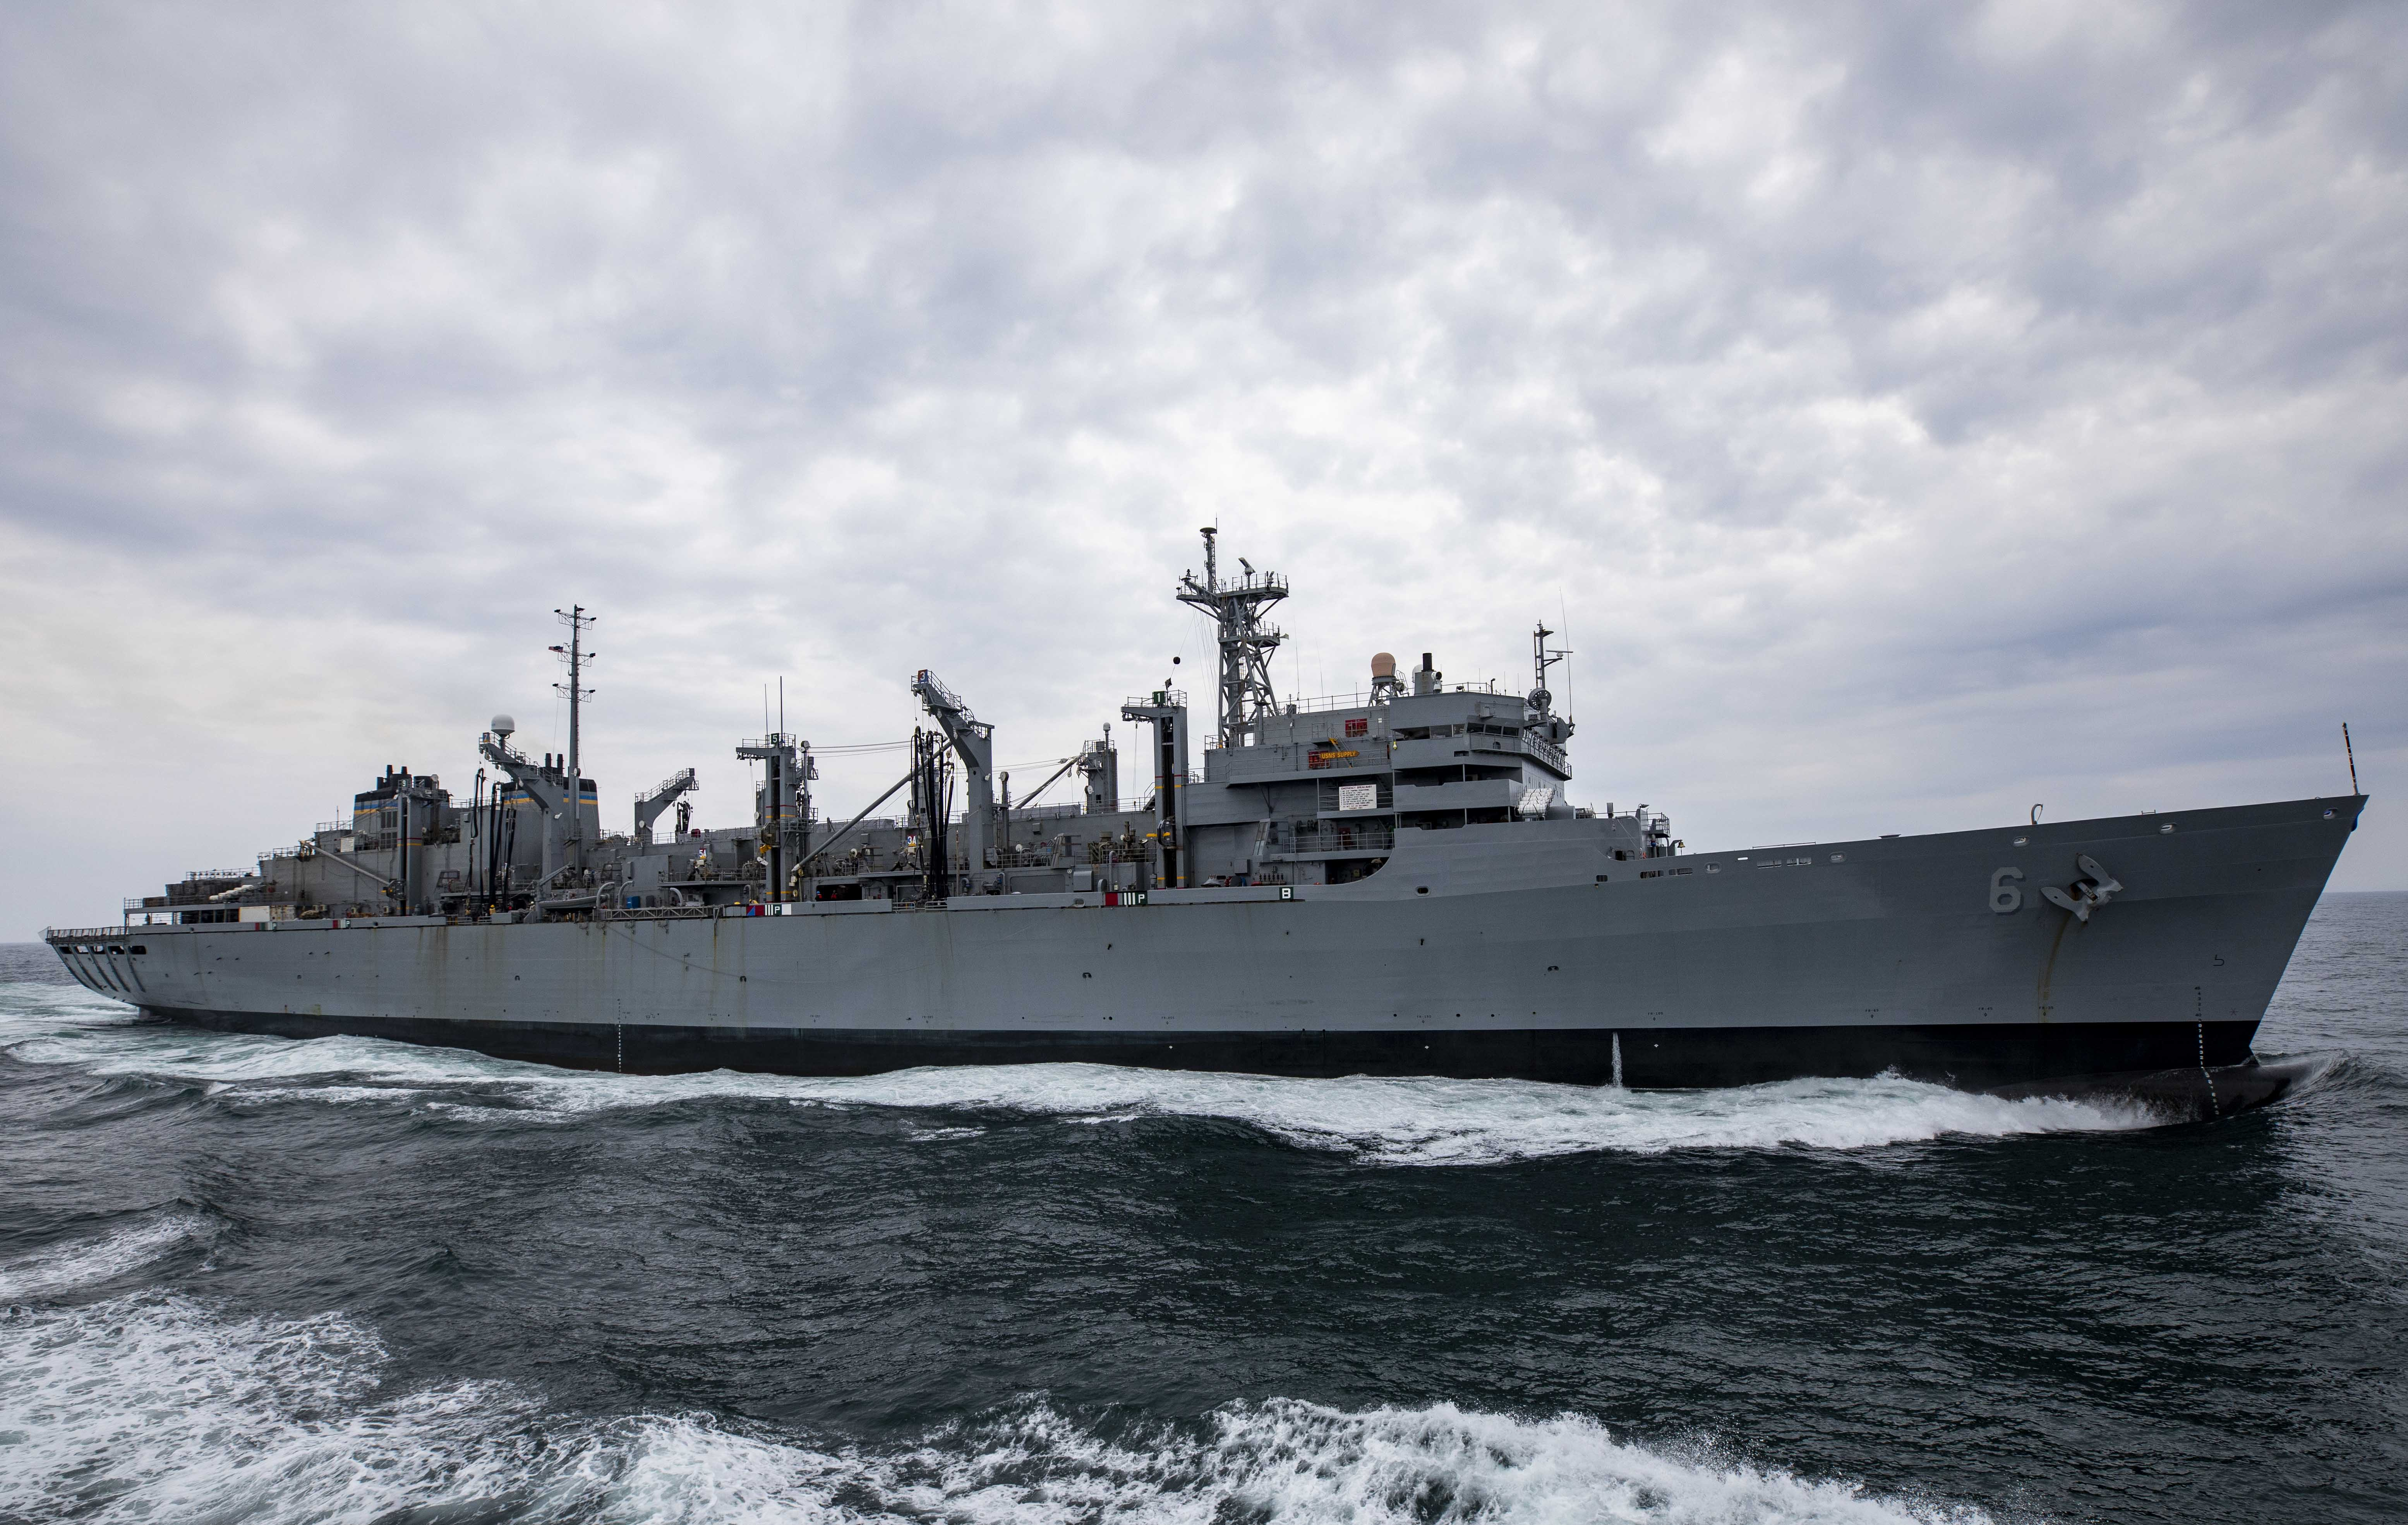 The Military Sealift Command Fast Combat Support Ship USNS Supply (T-AOE 6) transits the Atlantic Ocean during exercise At-Sea Demo/Formidable Shield.